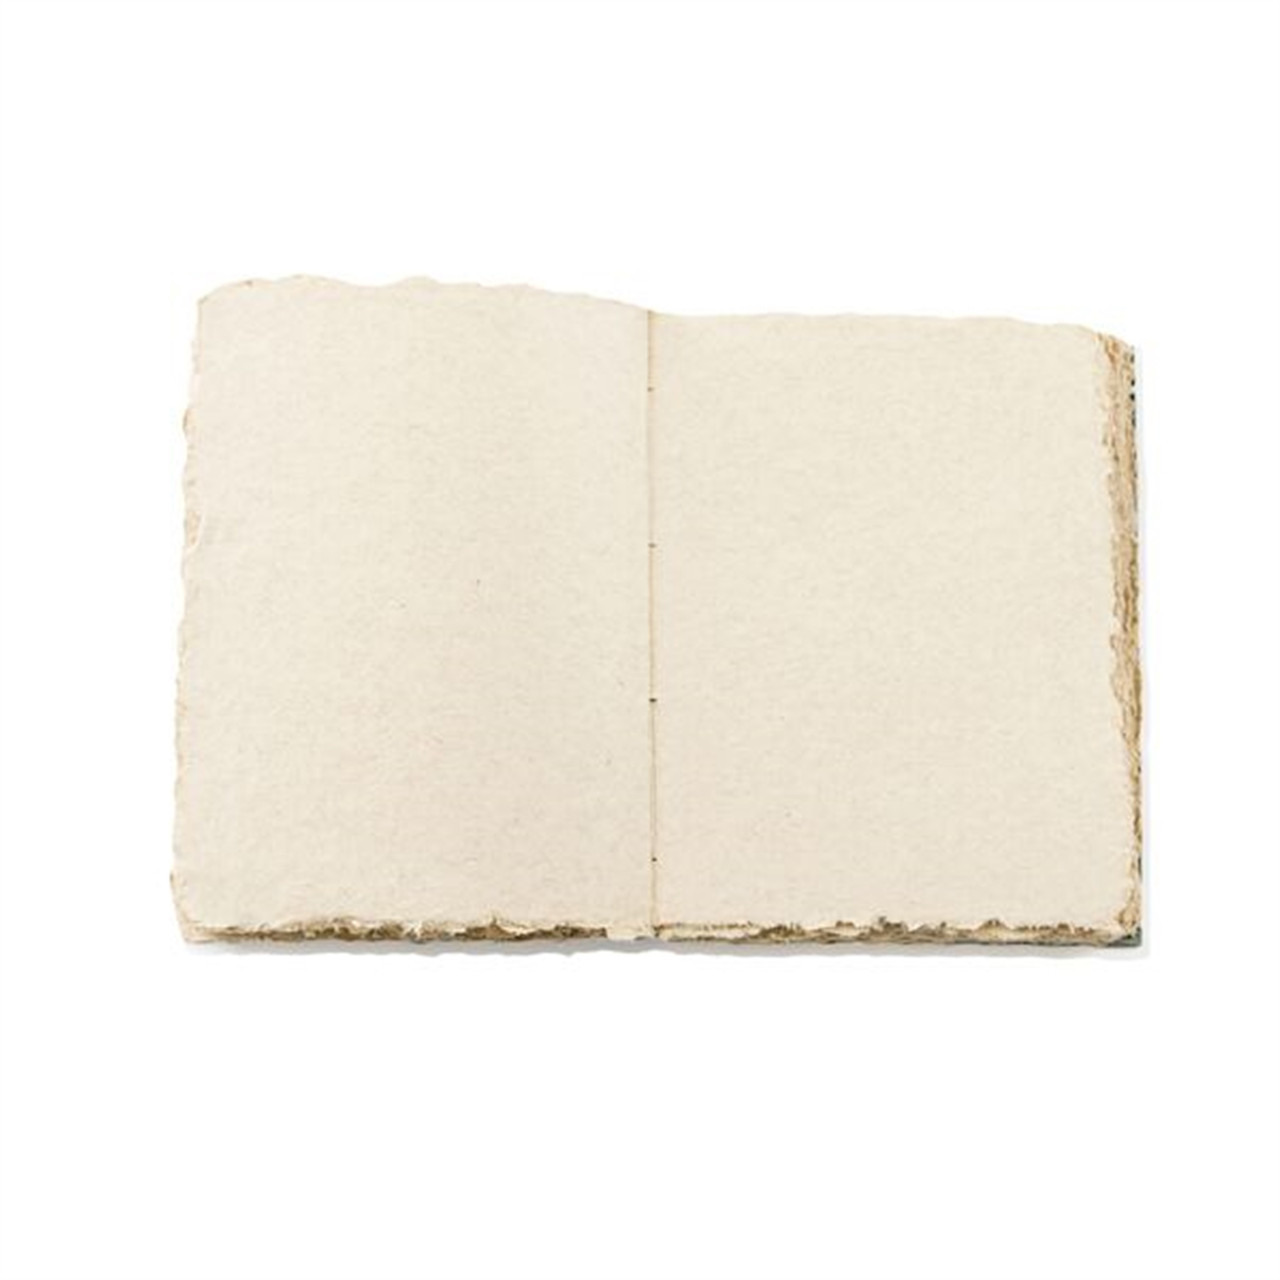 Open journal showing the handmade deckled edged paper.